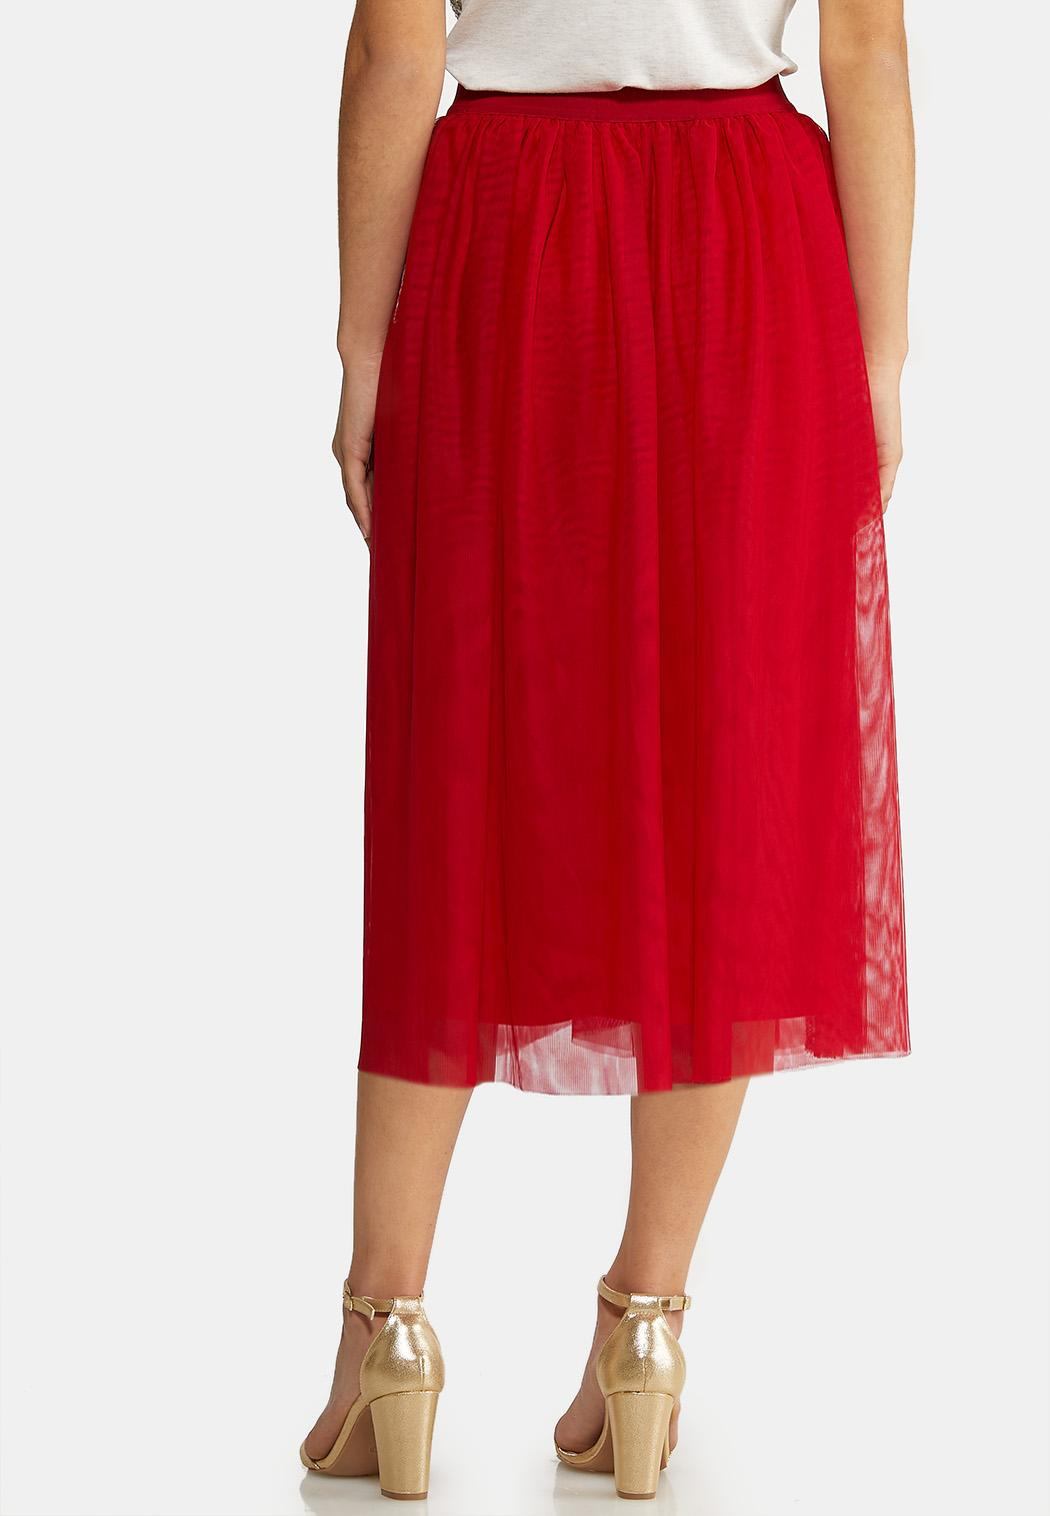 Plus Size Red Mesh Party Skirt (Item #44021979)